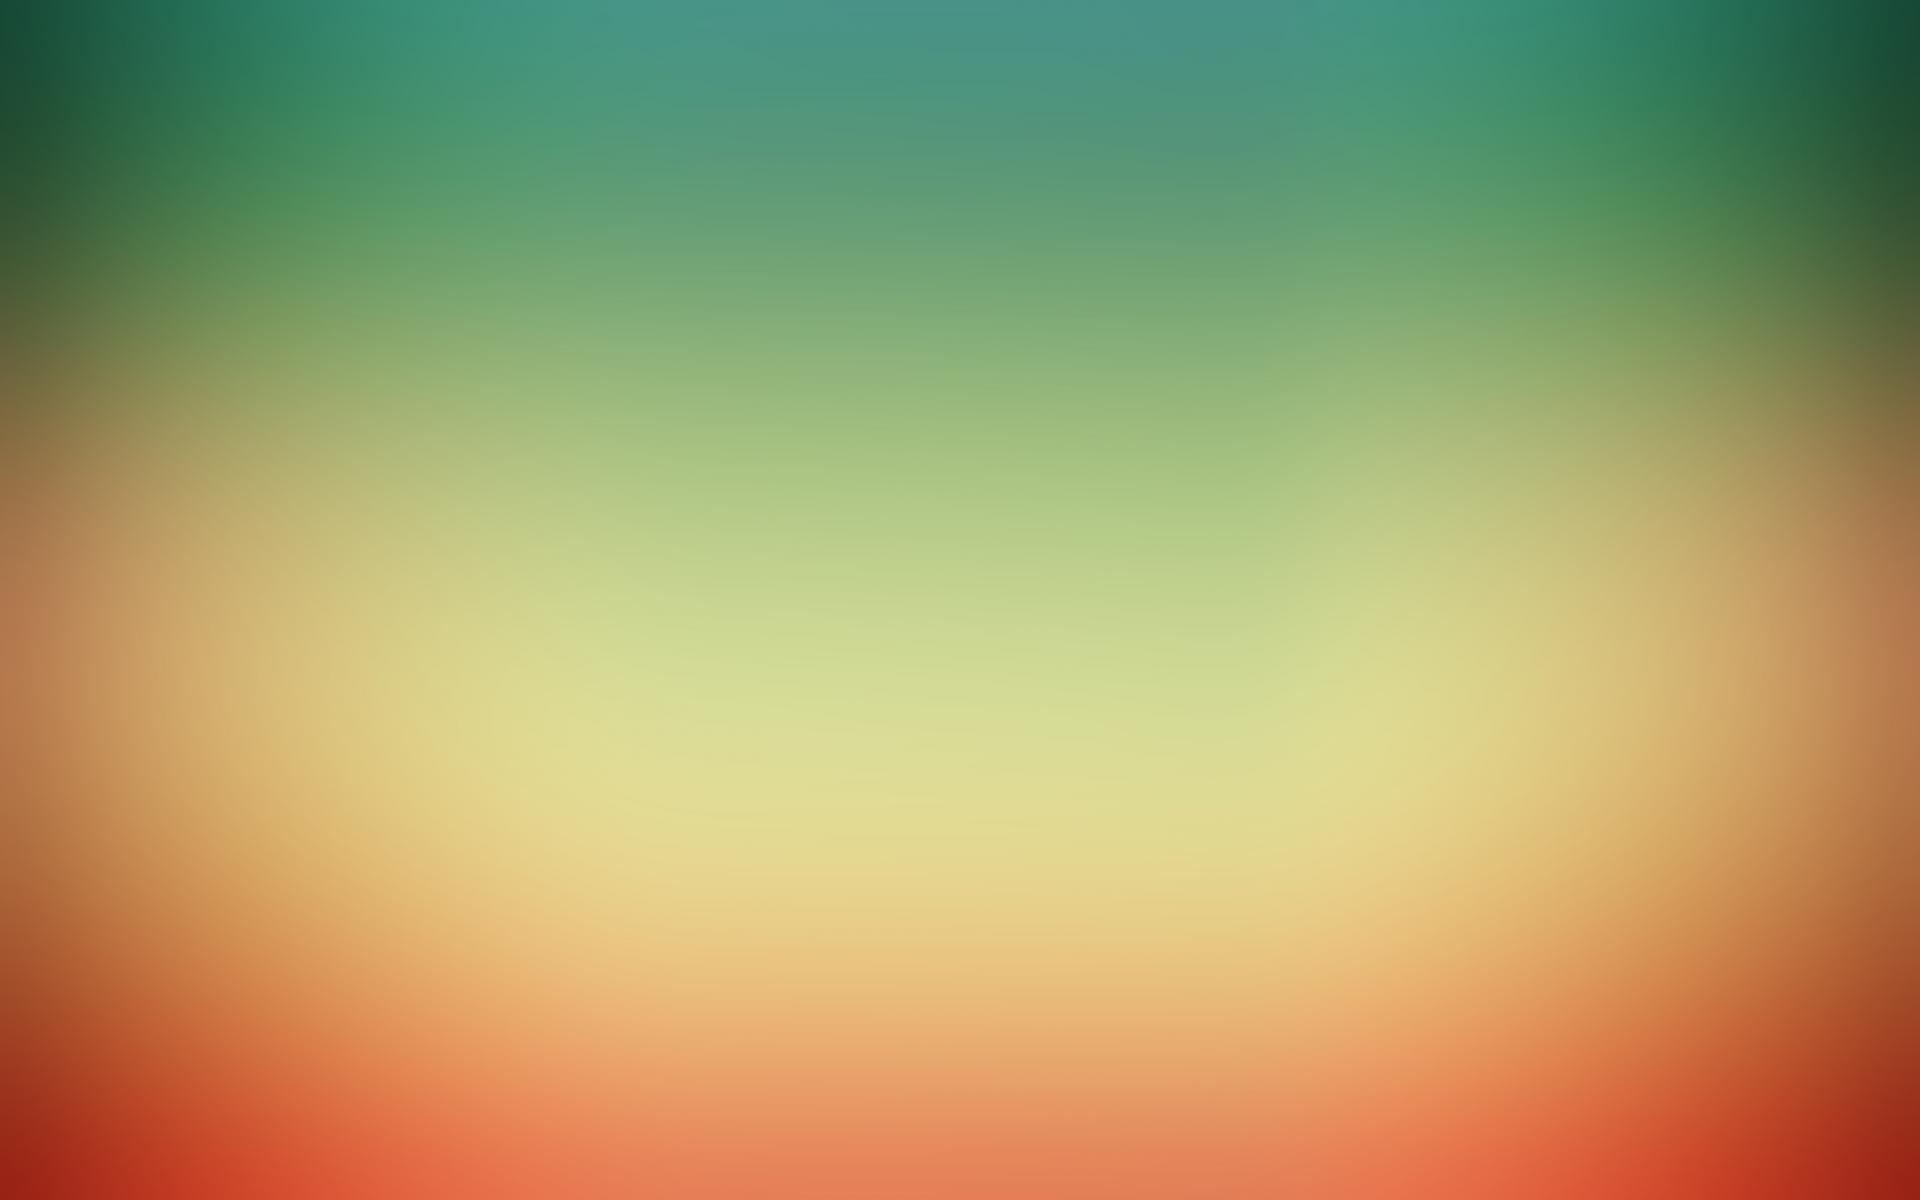 Cool gradient wallpaper 26040 1920x1200 px for Wallpaper for a